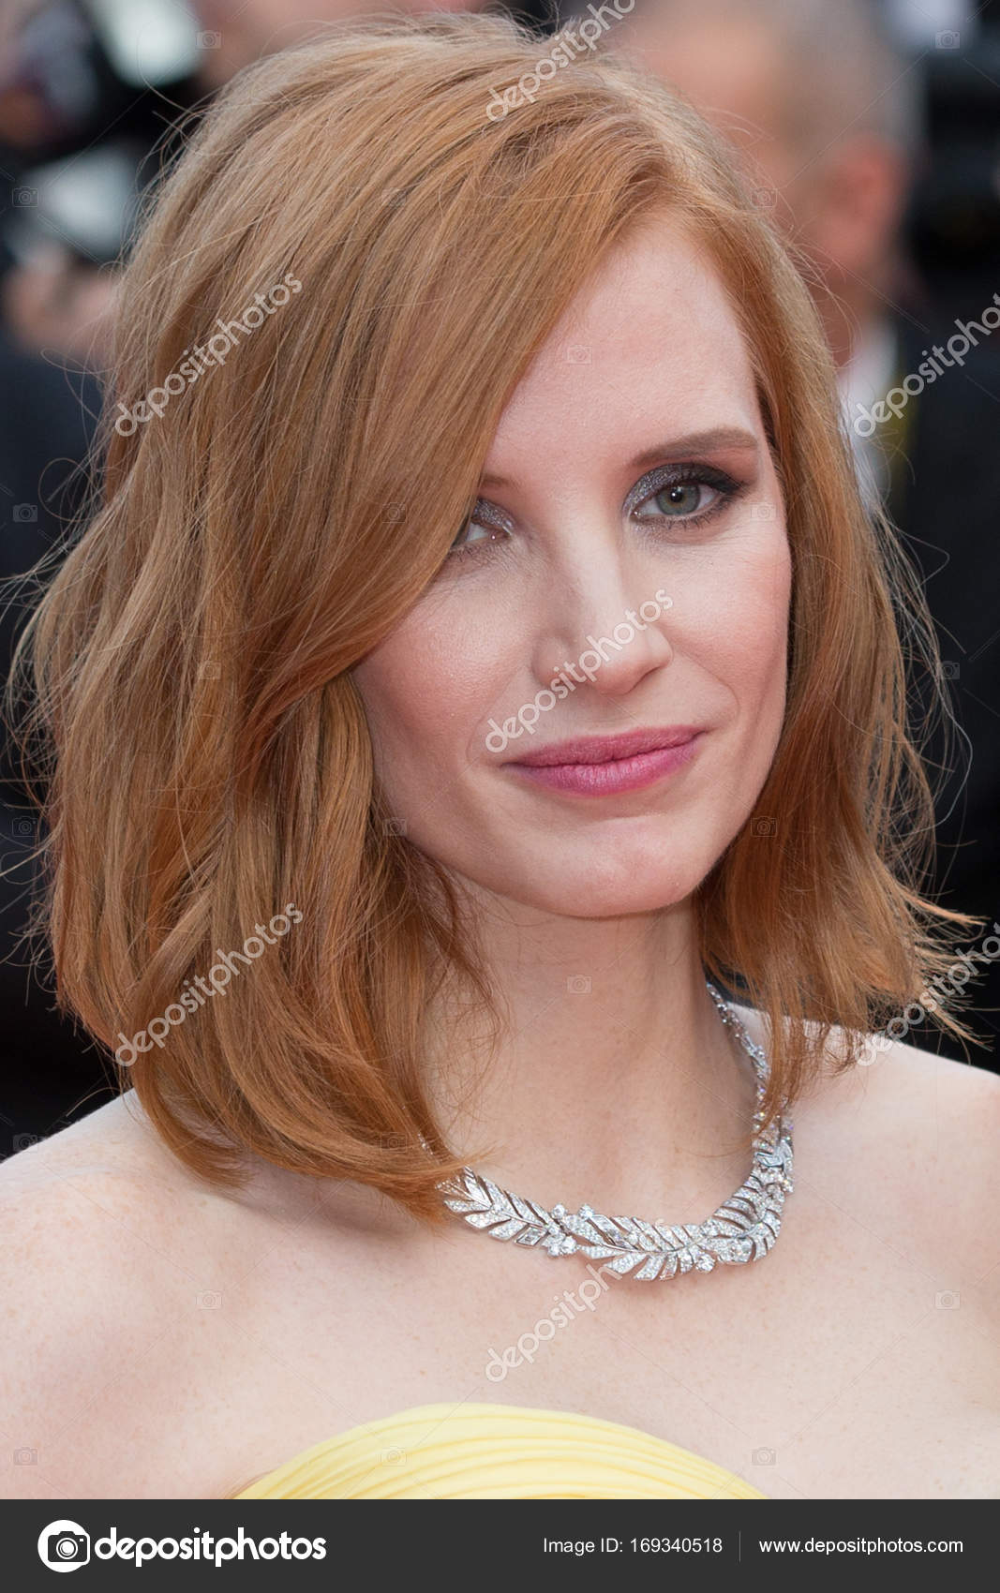 Pin On Hair Color Envy